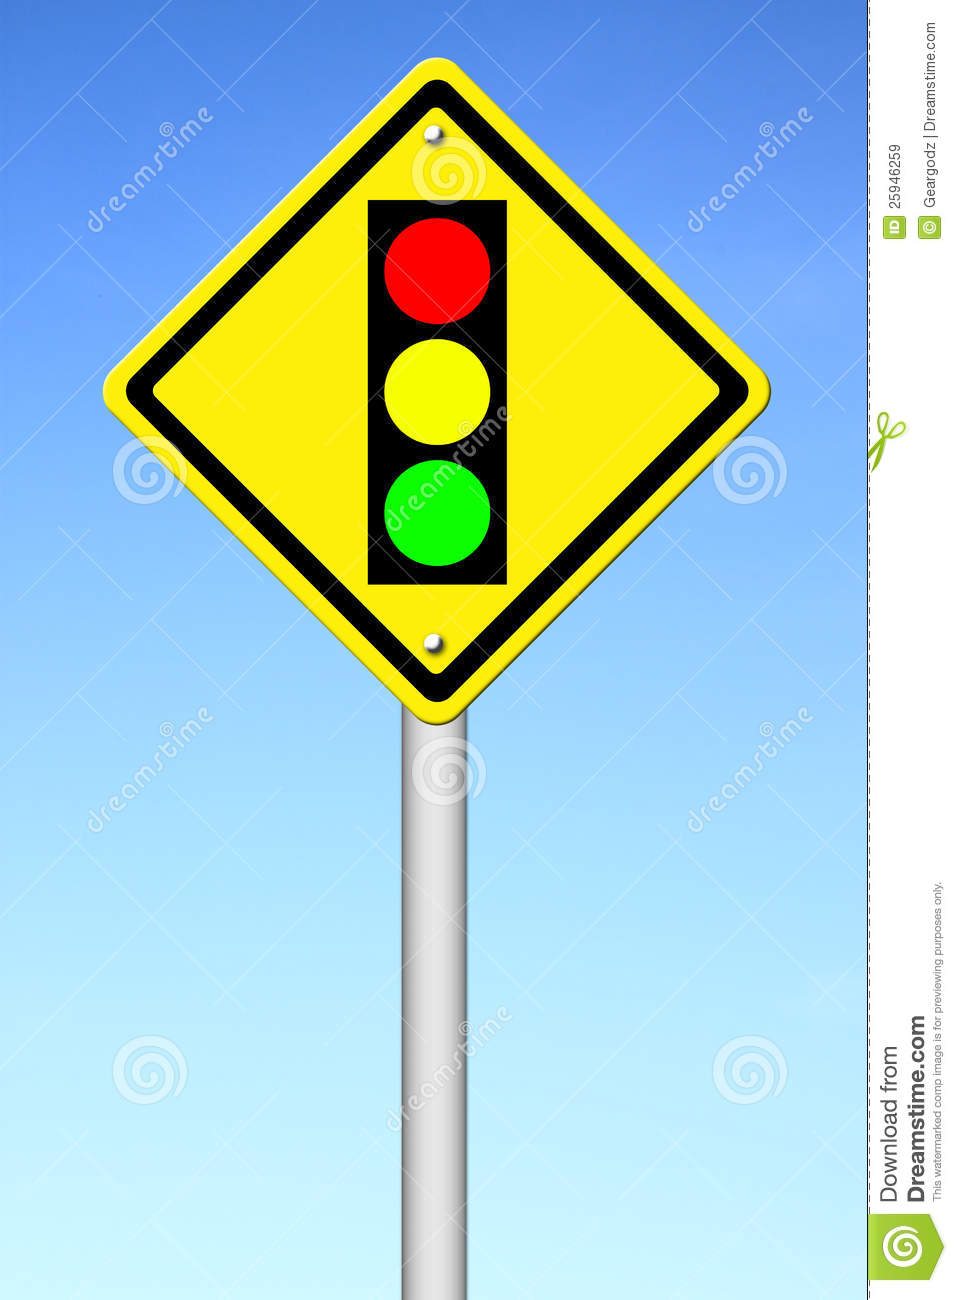 Traffic Light Ahead Warning Sign Royalty Free Stock Images - Image ...